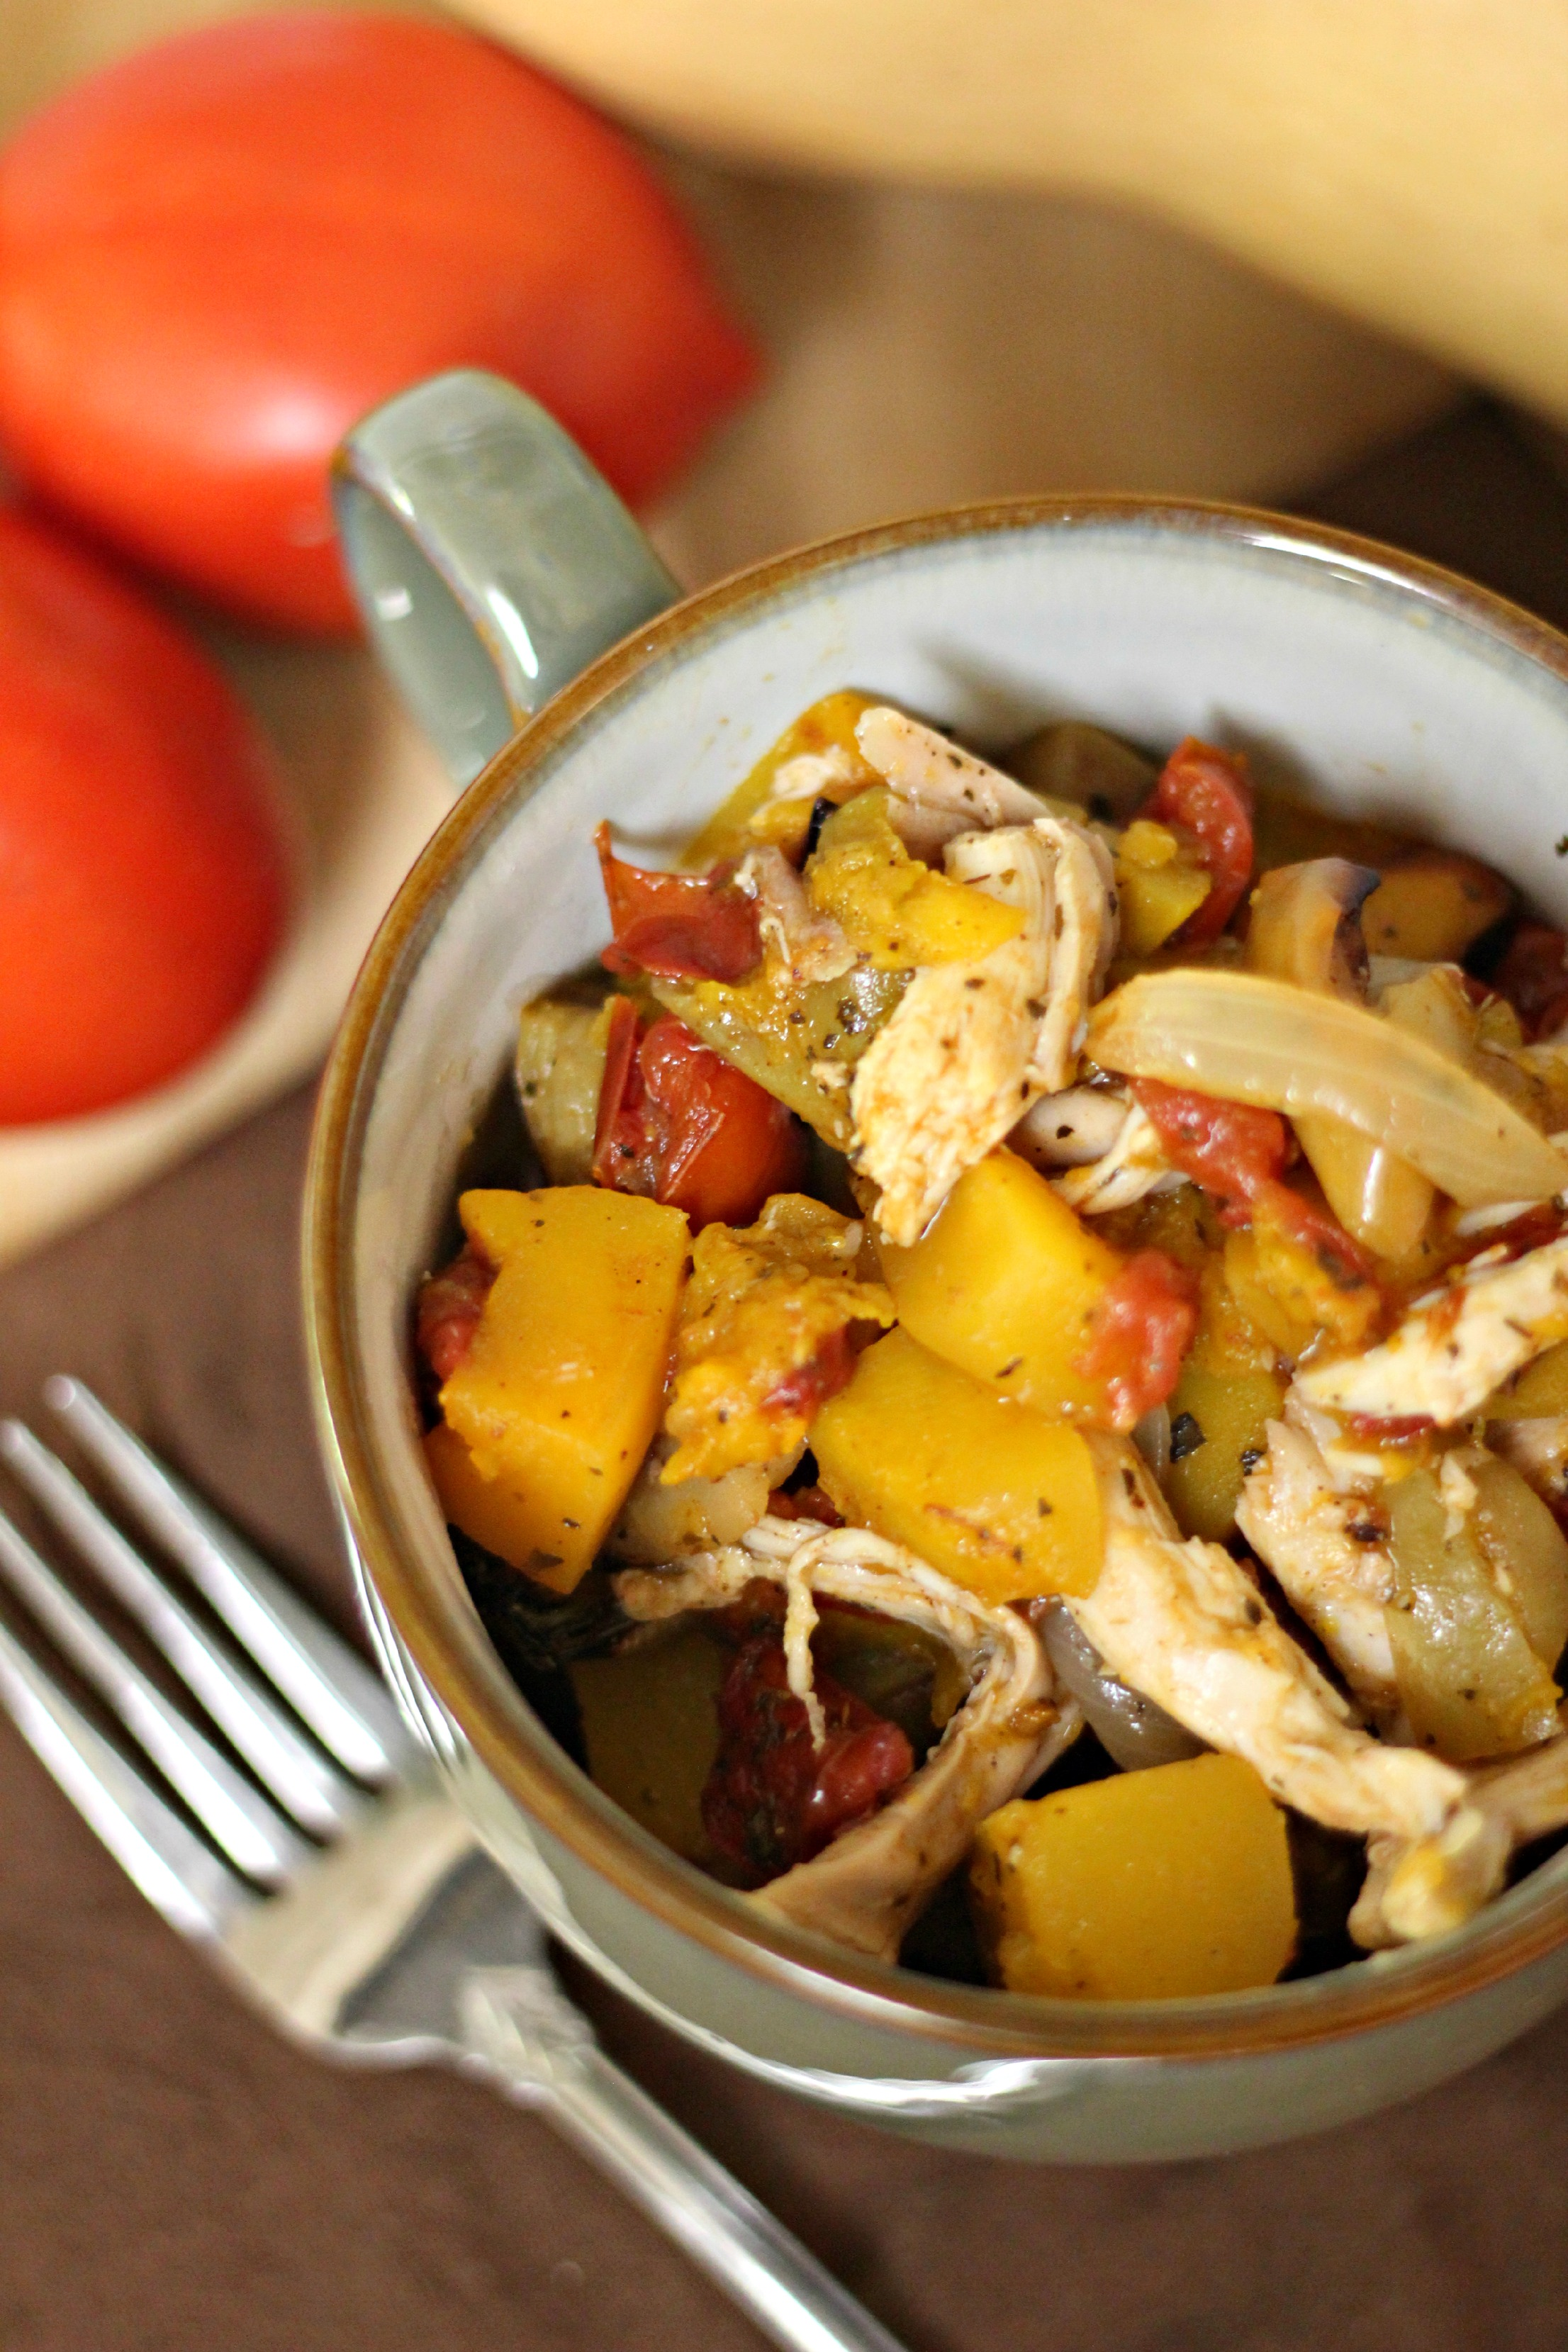 Roasted Squash and Chicken Stew